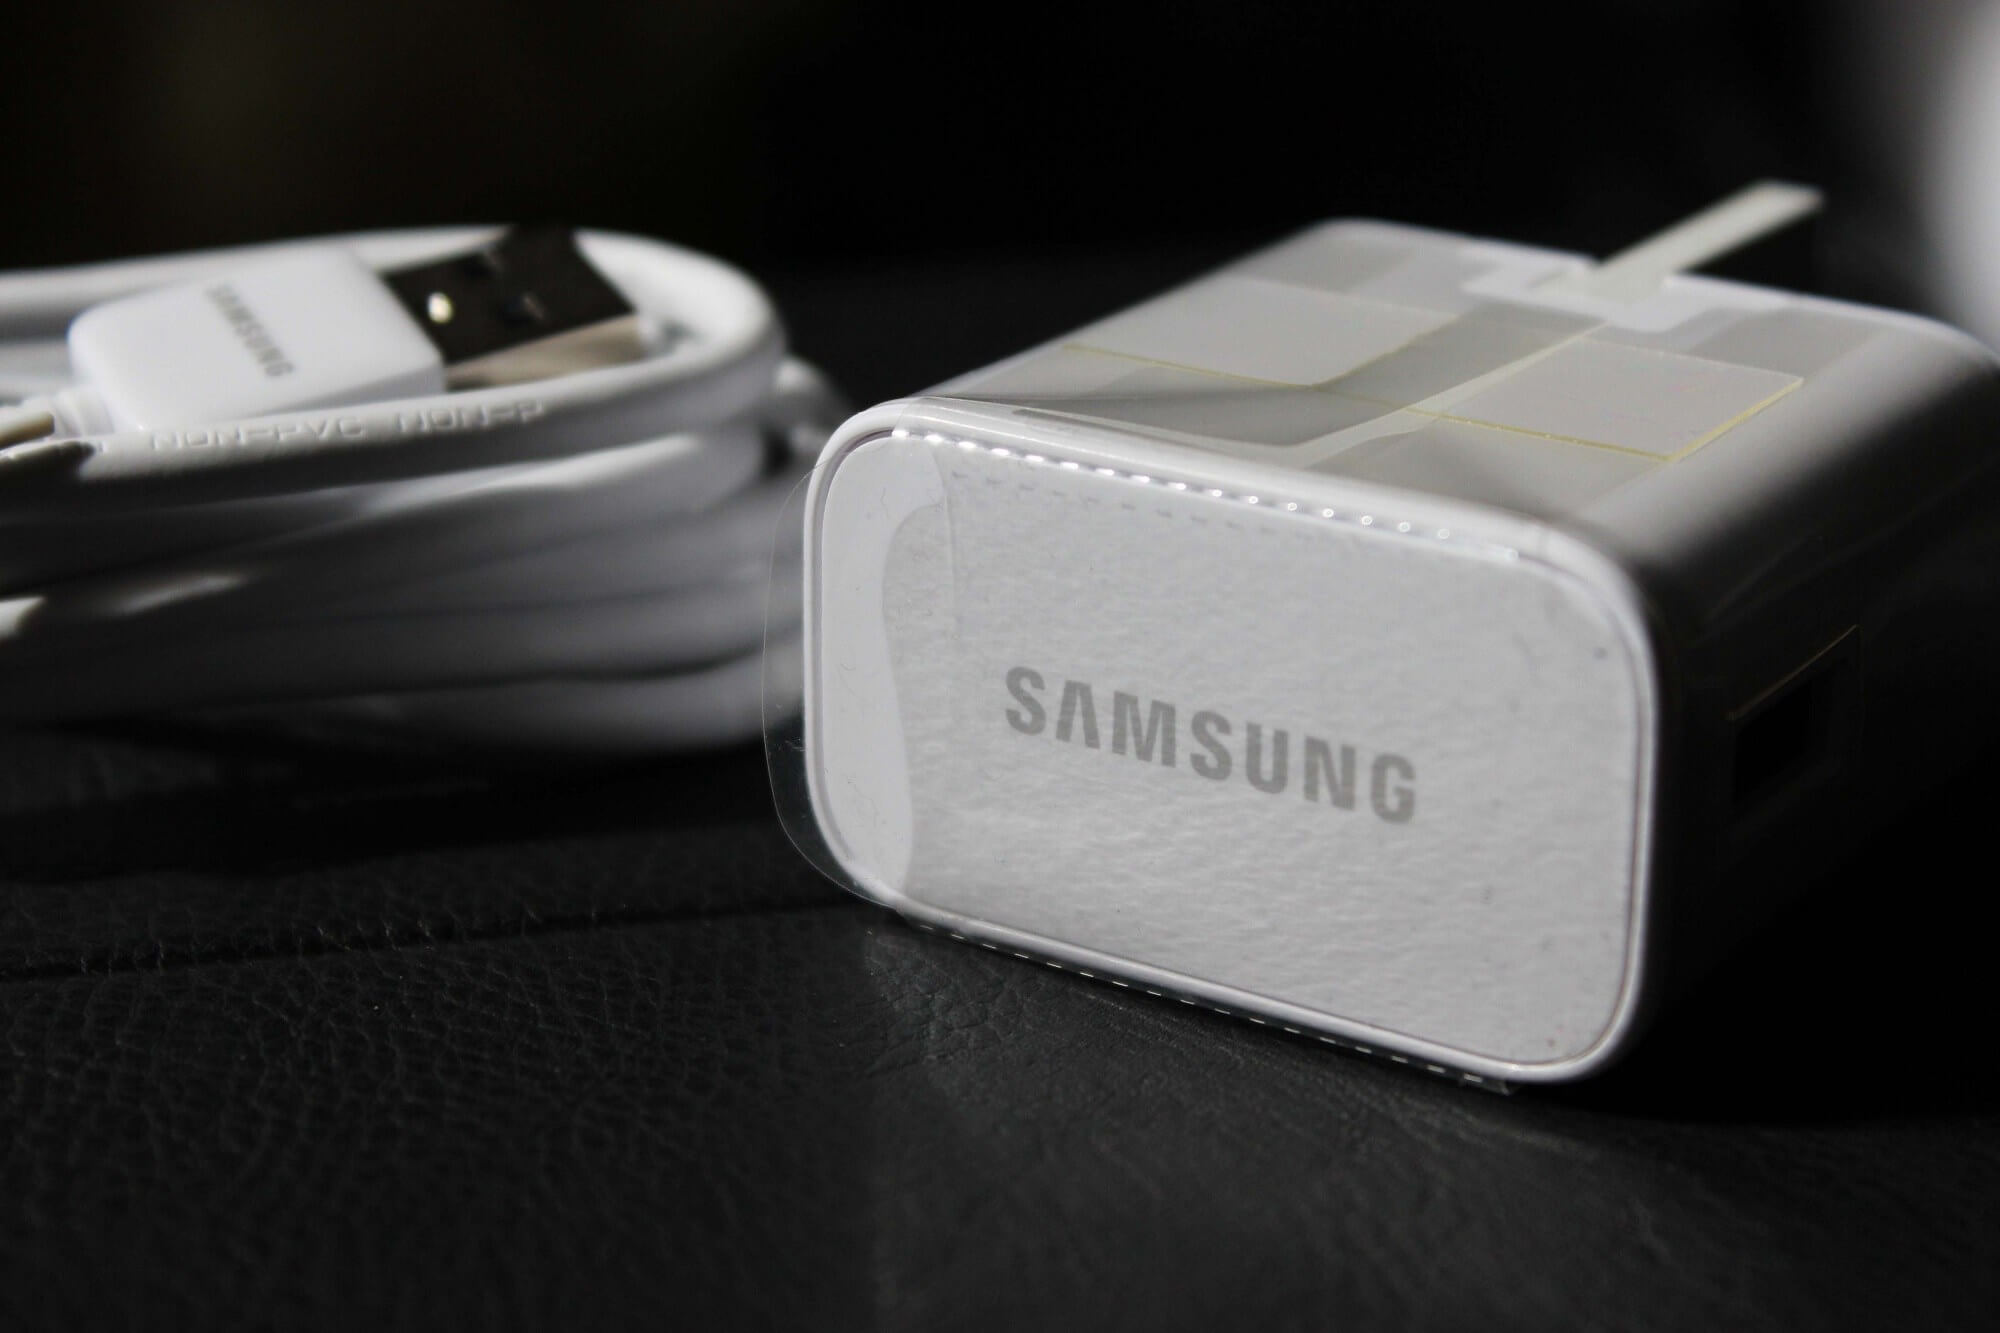 Rumors of Samsung unbundling chargers reinforced by removal of Apple-mocking Facebook post